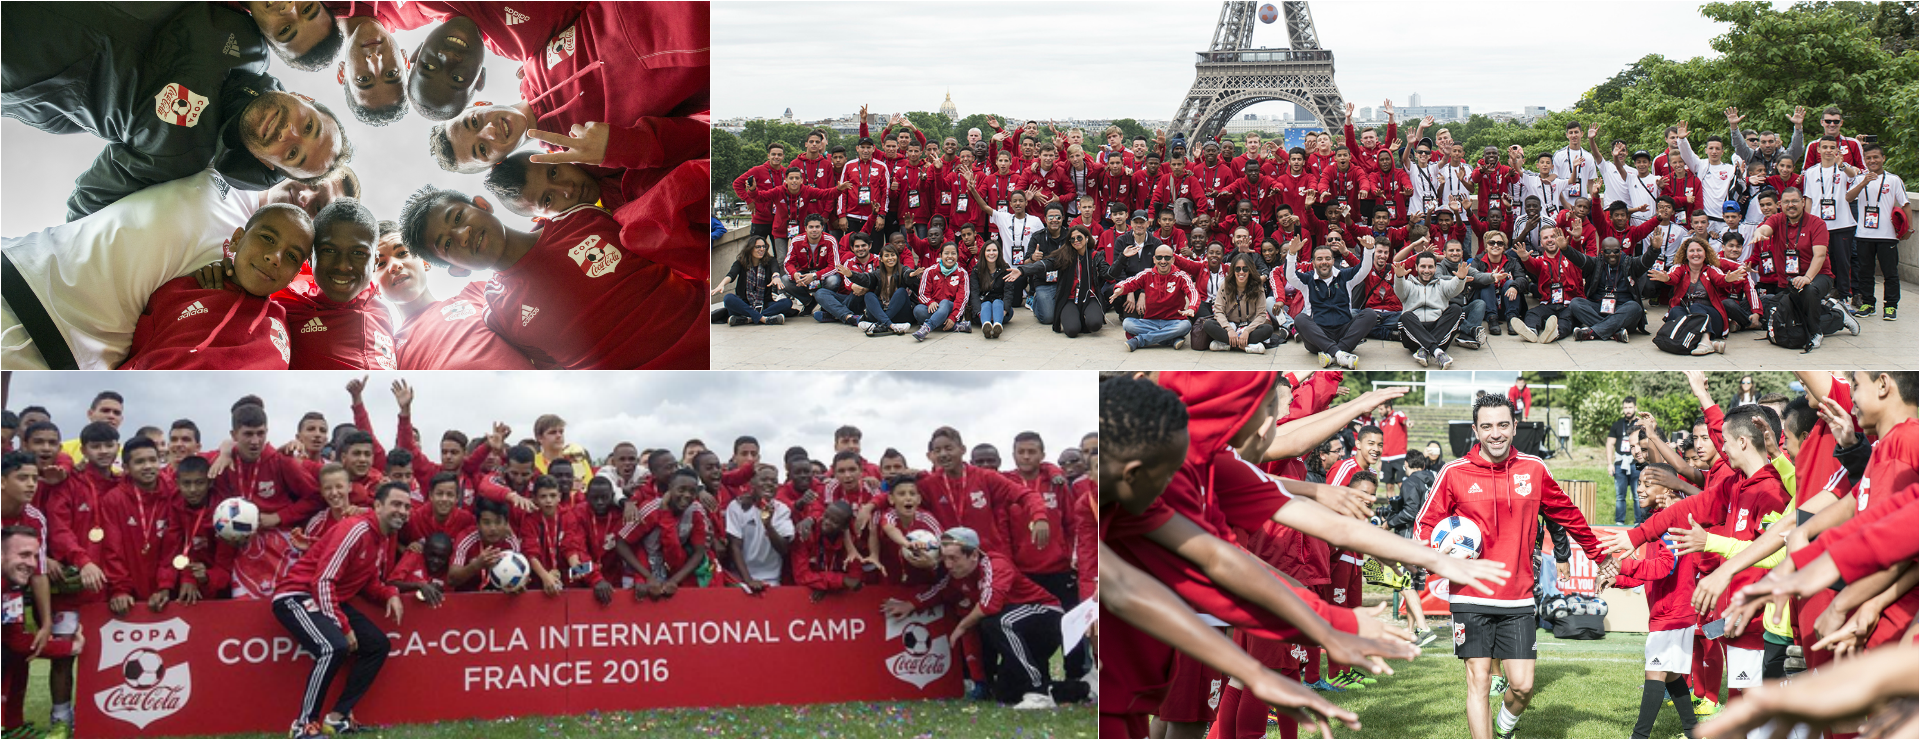 Xavi meets Copa – W-com beim Copa Coca-Cola International Camp 2016